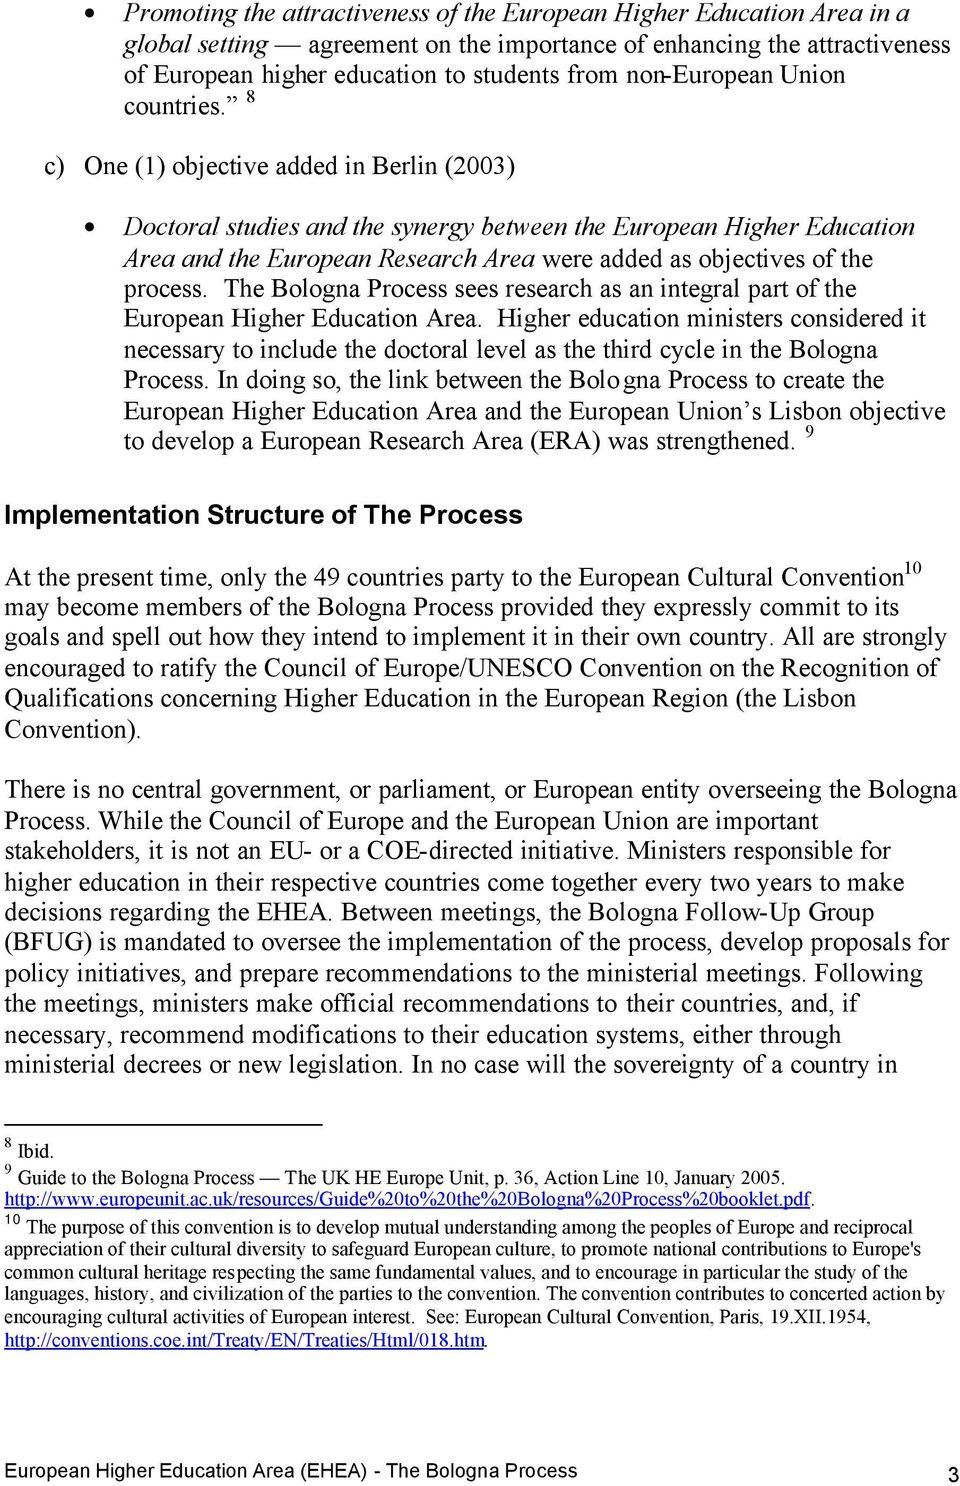 8 c) One (1) objective added in Berlin (2003) Doctoral studies and the synergy between the European Higher Education Area and the European Research Area were added as objectives of the process.